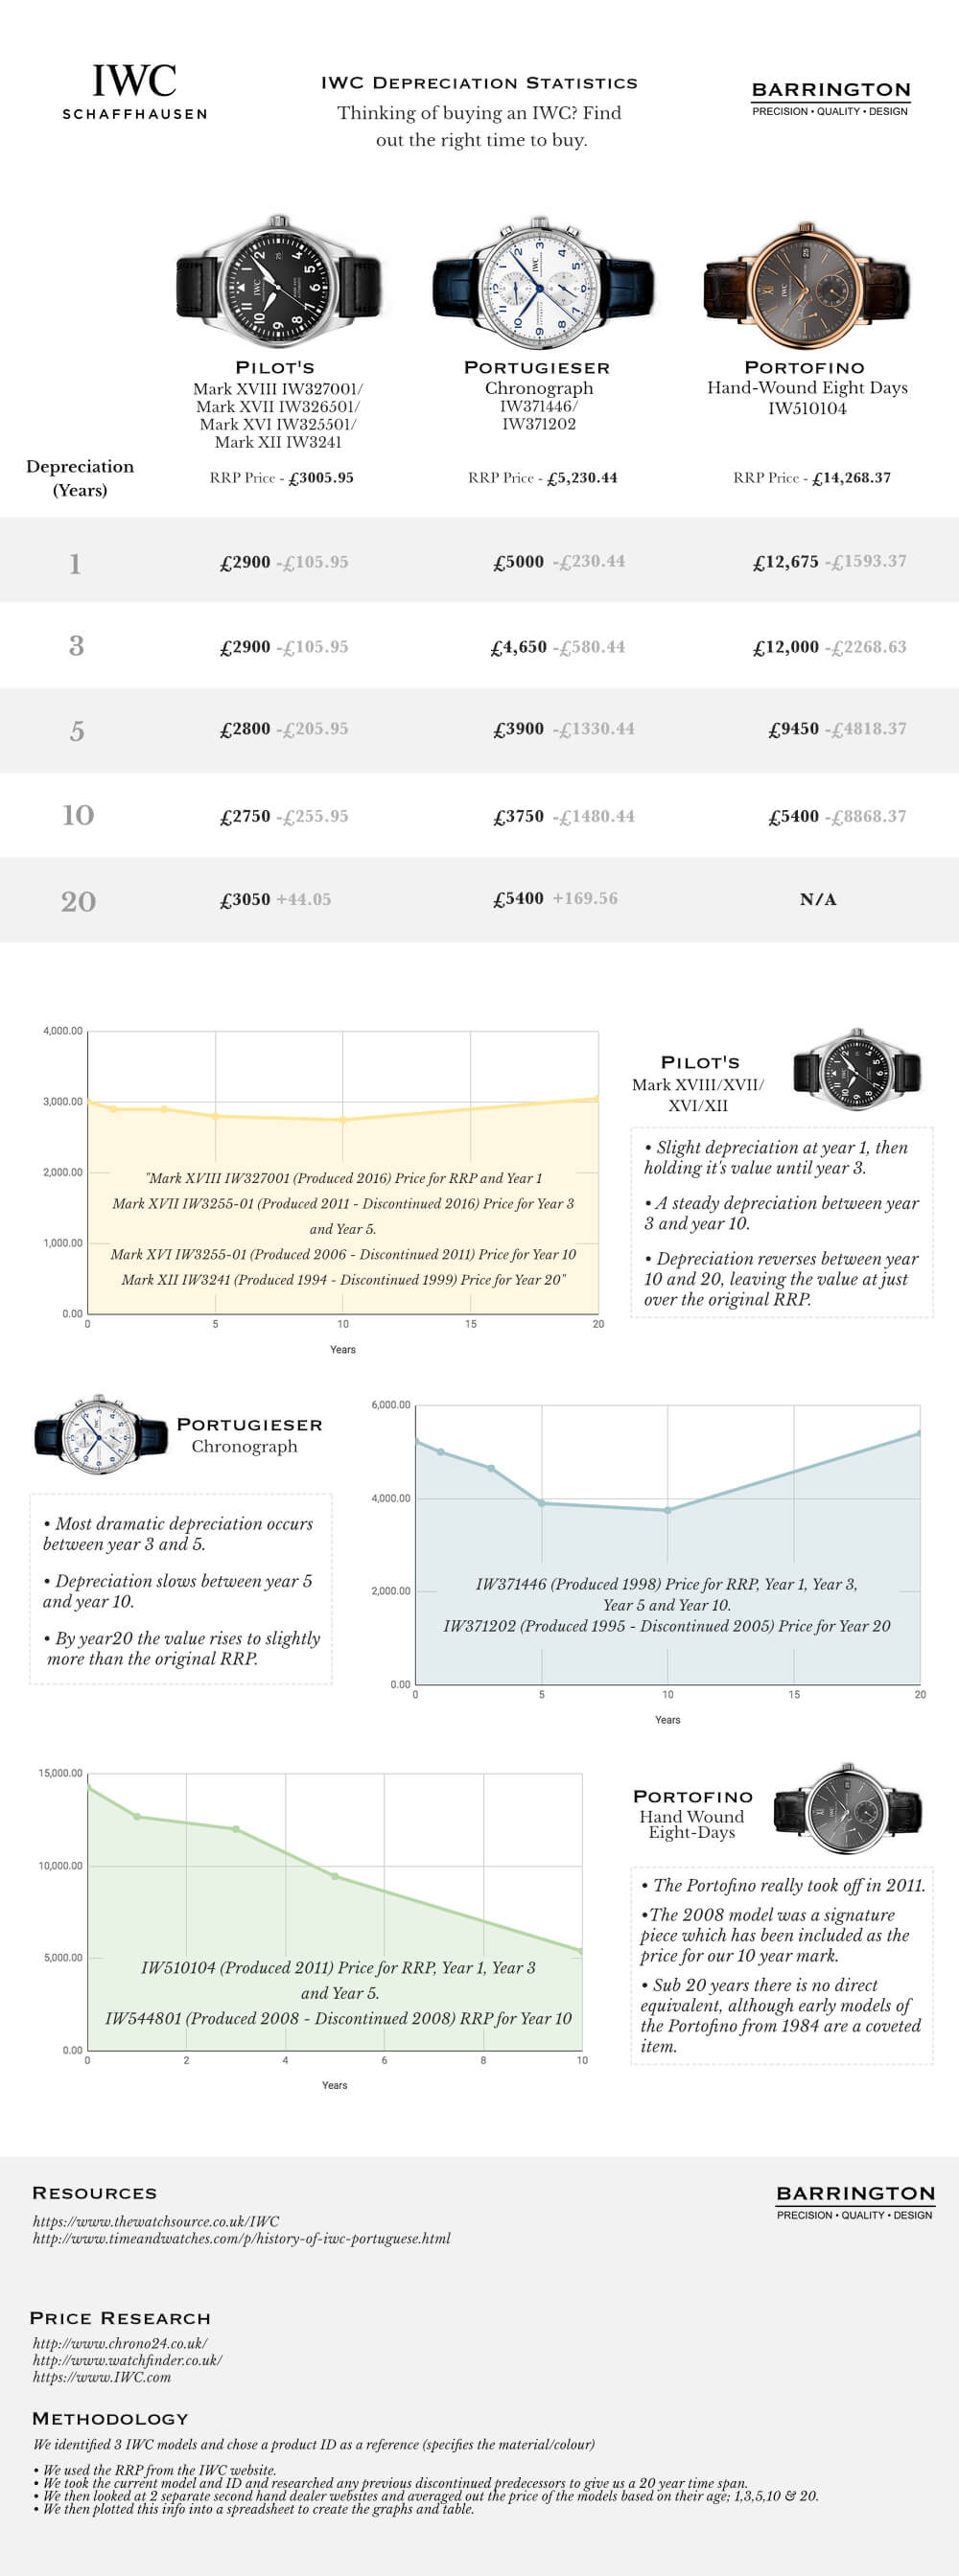 IWC Depreciation Infographic